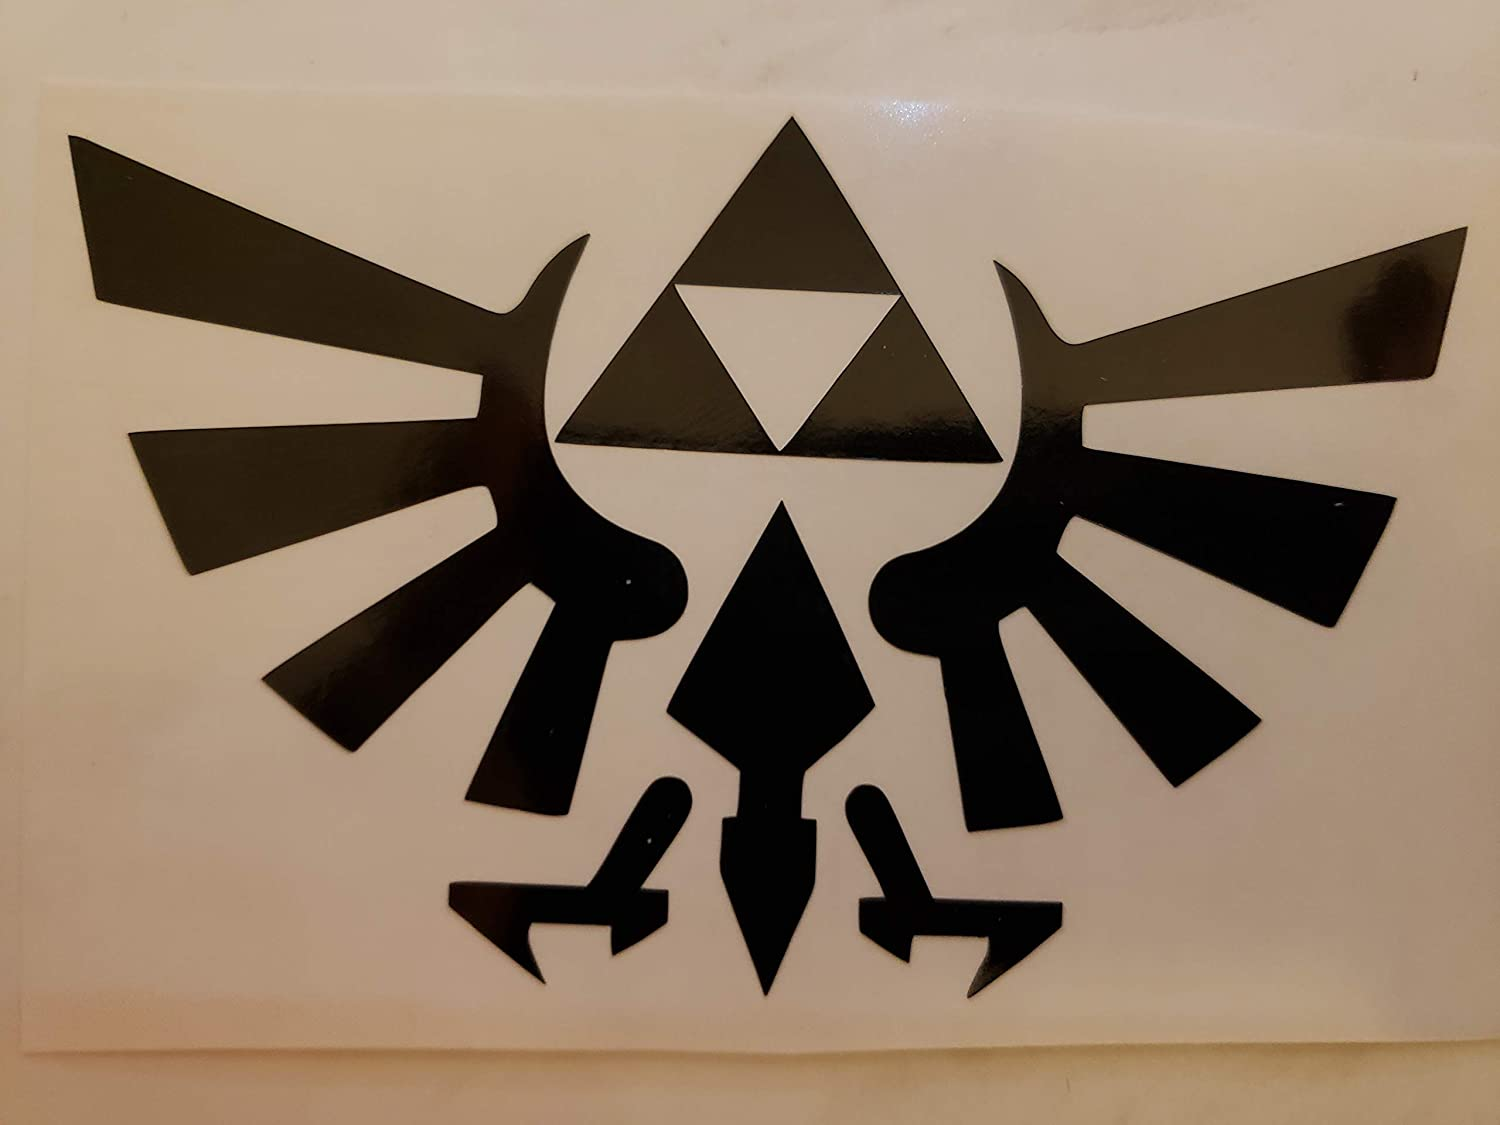 LEGEND of ZELDA TRIFORCE - WOW Decal Windo Vinyl RE High quality Ranking TOP4 10